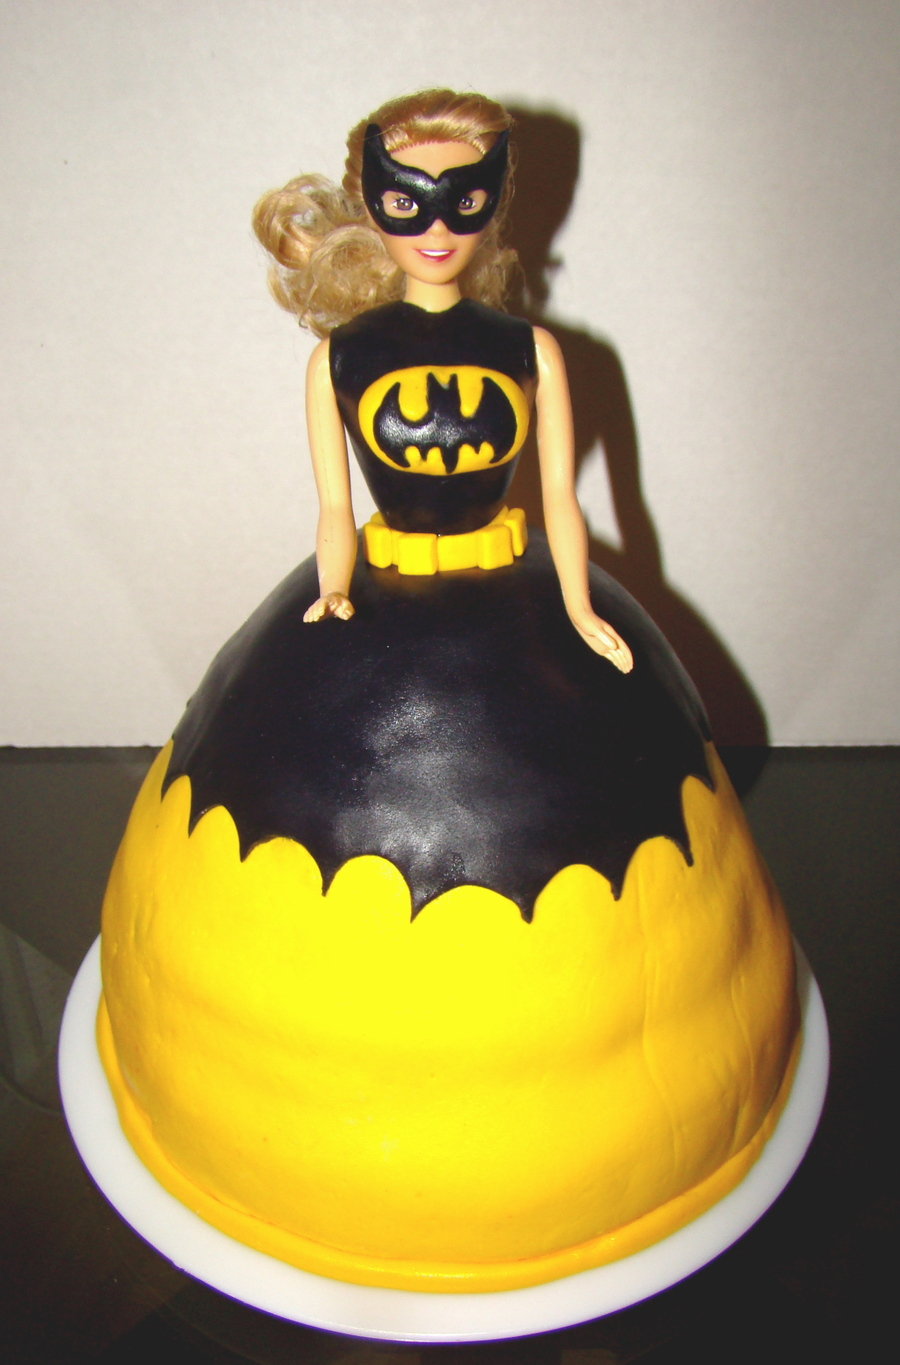 Batgirl Superhero Princess Cake on Cake Central